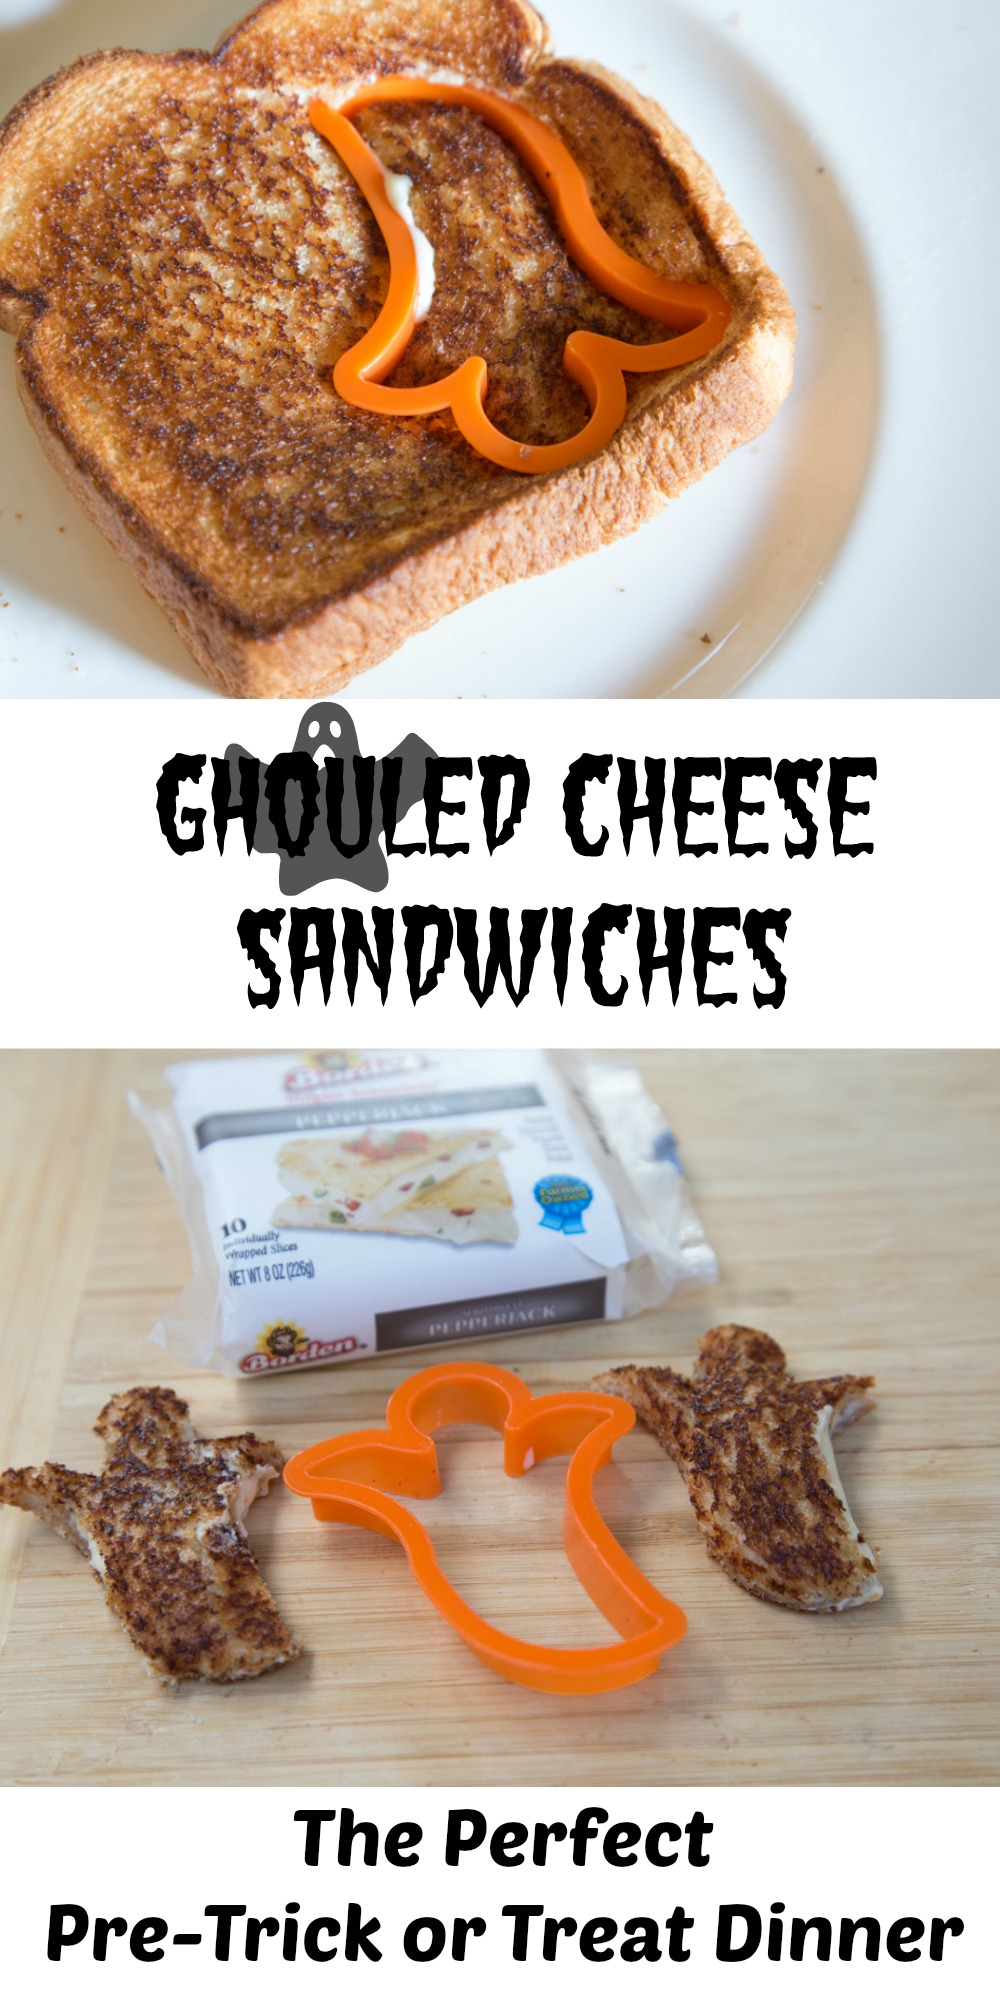 ghouled-cheese-sandwiches-5dollardinners-com